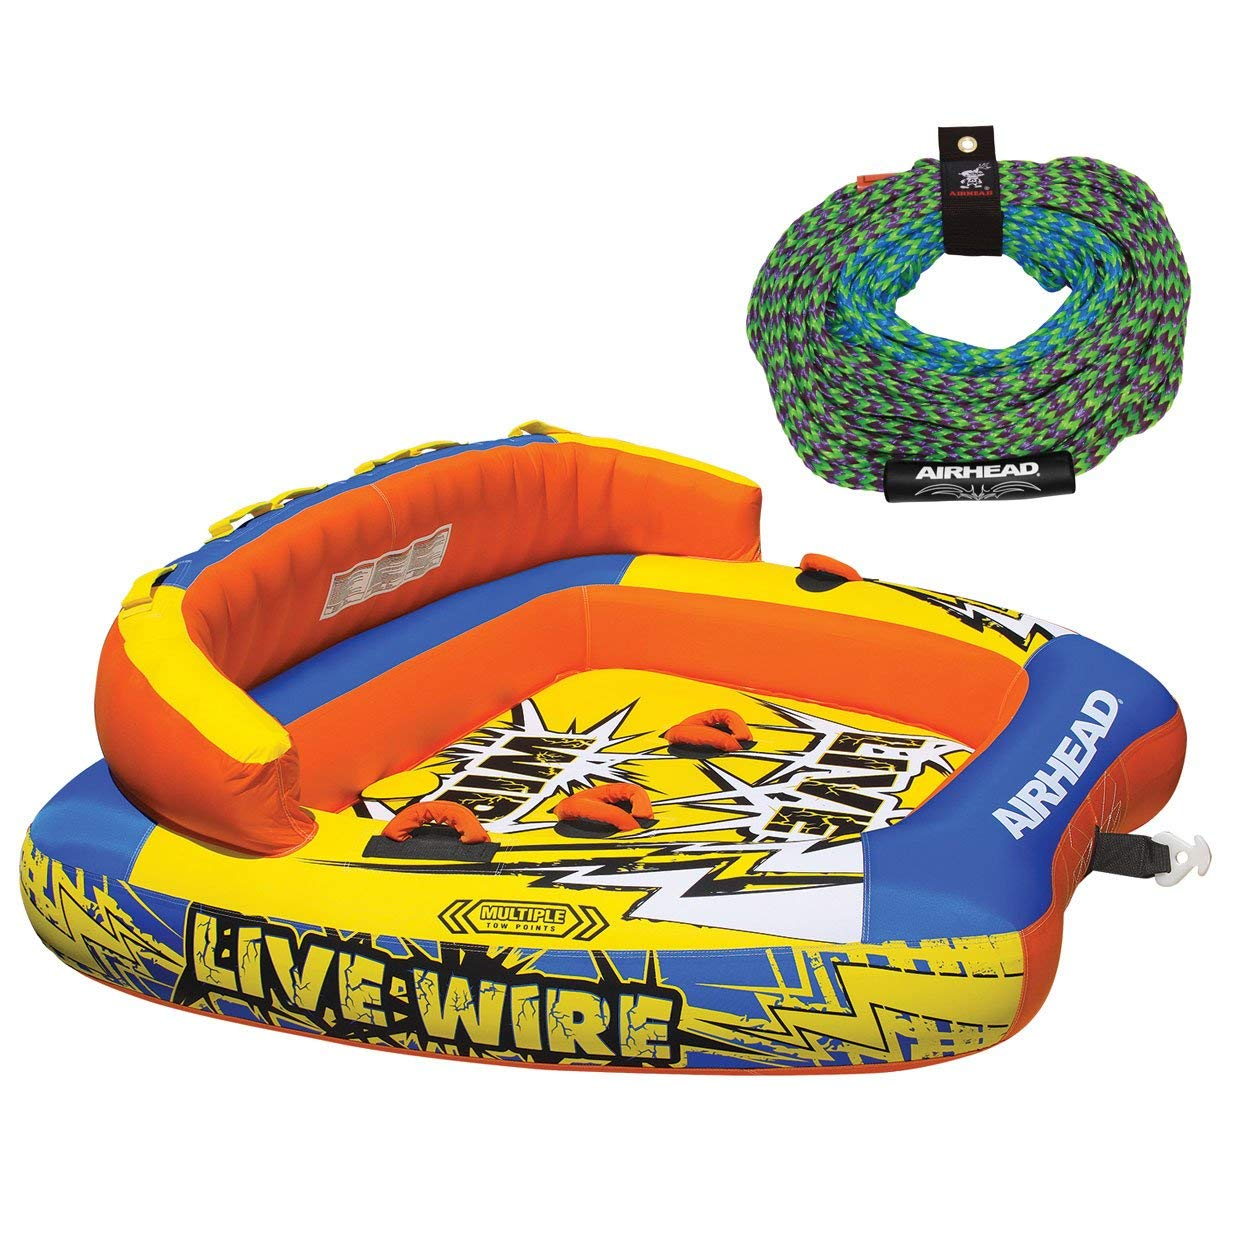 Water Sports OBrien 66 Heavy Duty One Rider Towable Lake Tube w/ Tow Line Connector 2 Pack